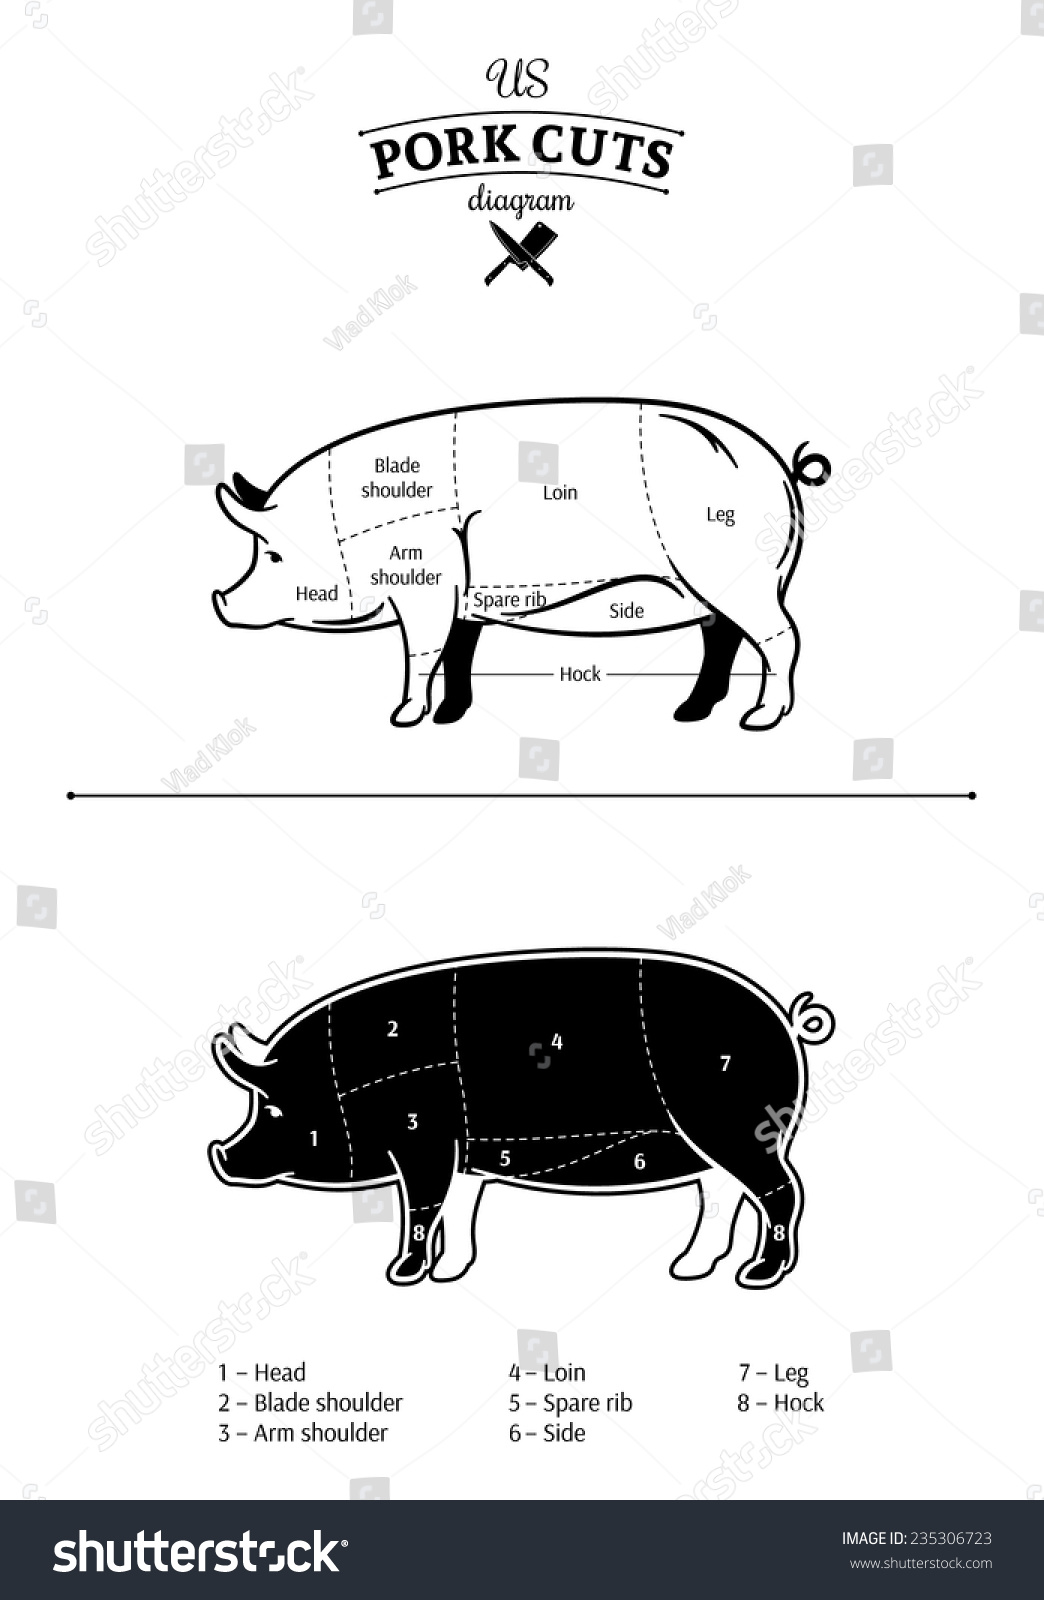 hight resolution of pig arm diagram wiring diagram yer pig arm diagram